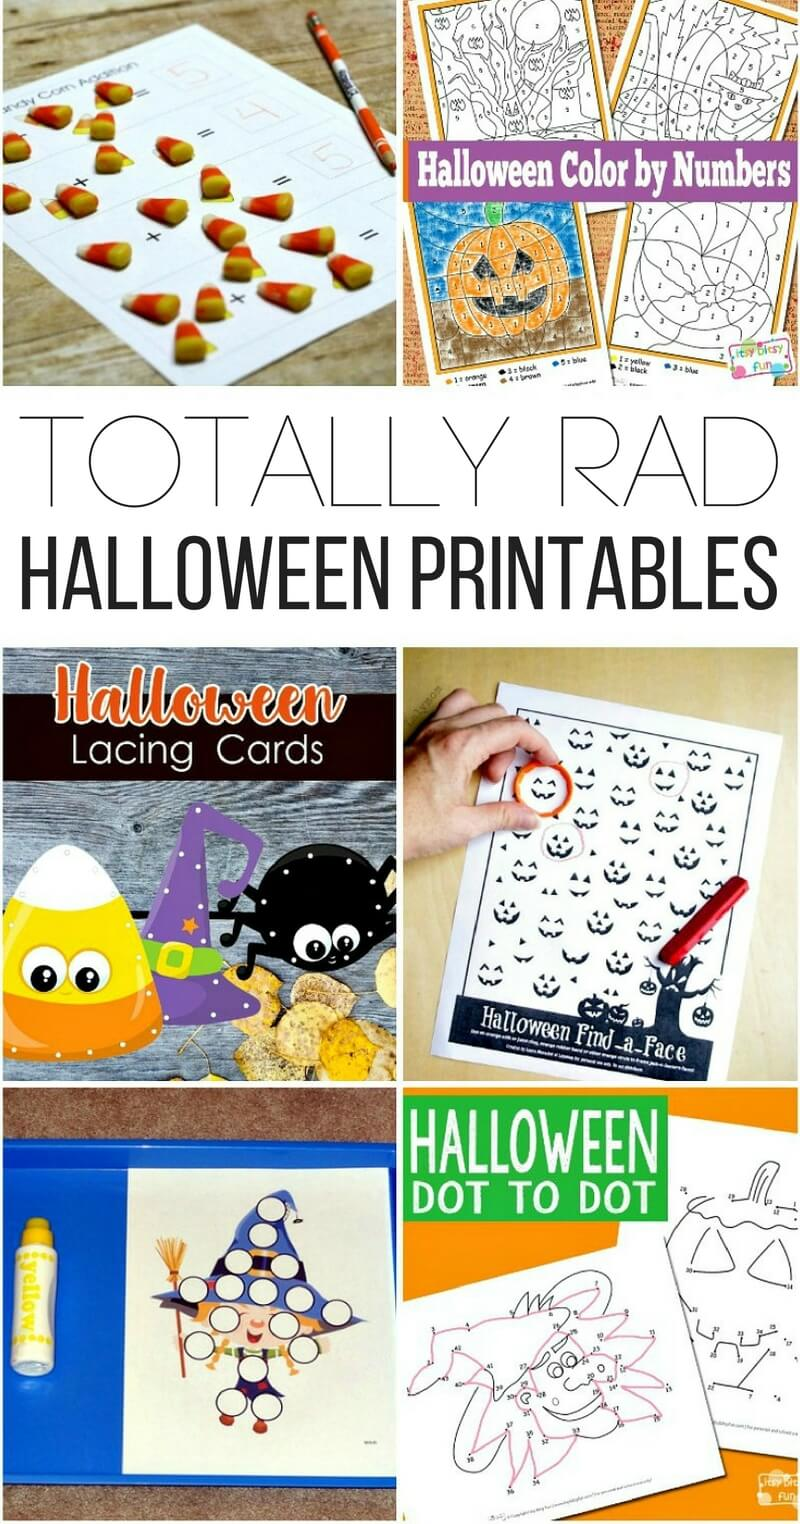 Totally Rad Halloween Printables!